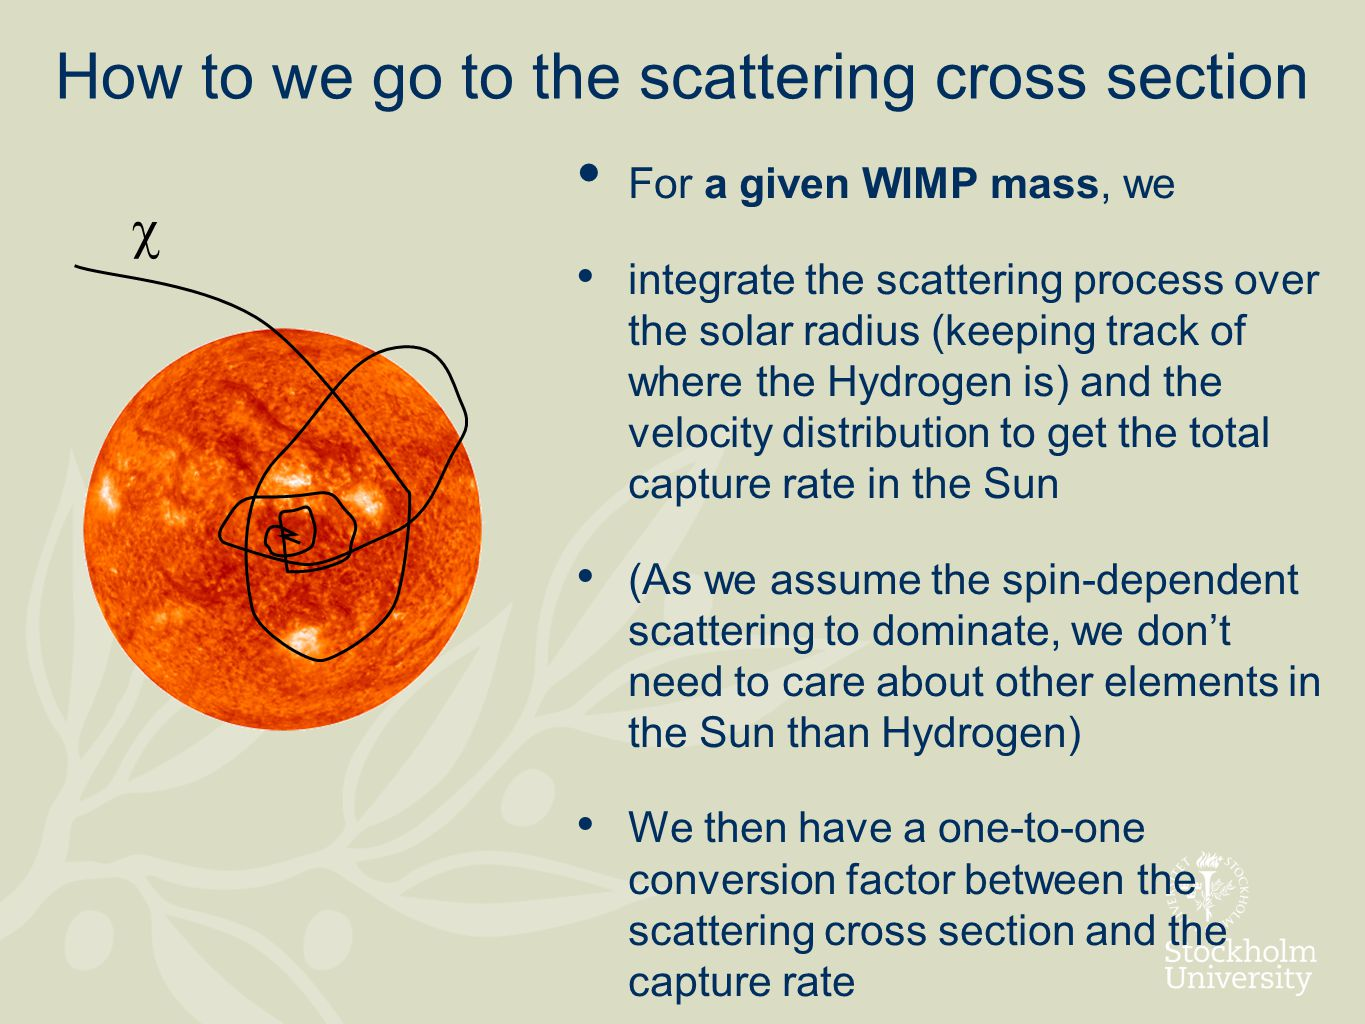 How to we go to the scattering cross section For a given WIMP mass, we integrate the scattering process over the solar radius (keeping track of where the Hydrogen is) and the velocity distribution to get the total capture rate in the Sun (As we assume the spin-dependent scattering to dominate, we don't need to care about other elements in the Sun than Hydrogen) We then have a one-to-one conversion factor between the scattering cross section and the capture rate 